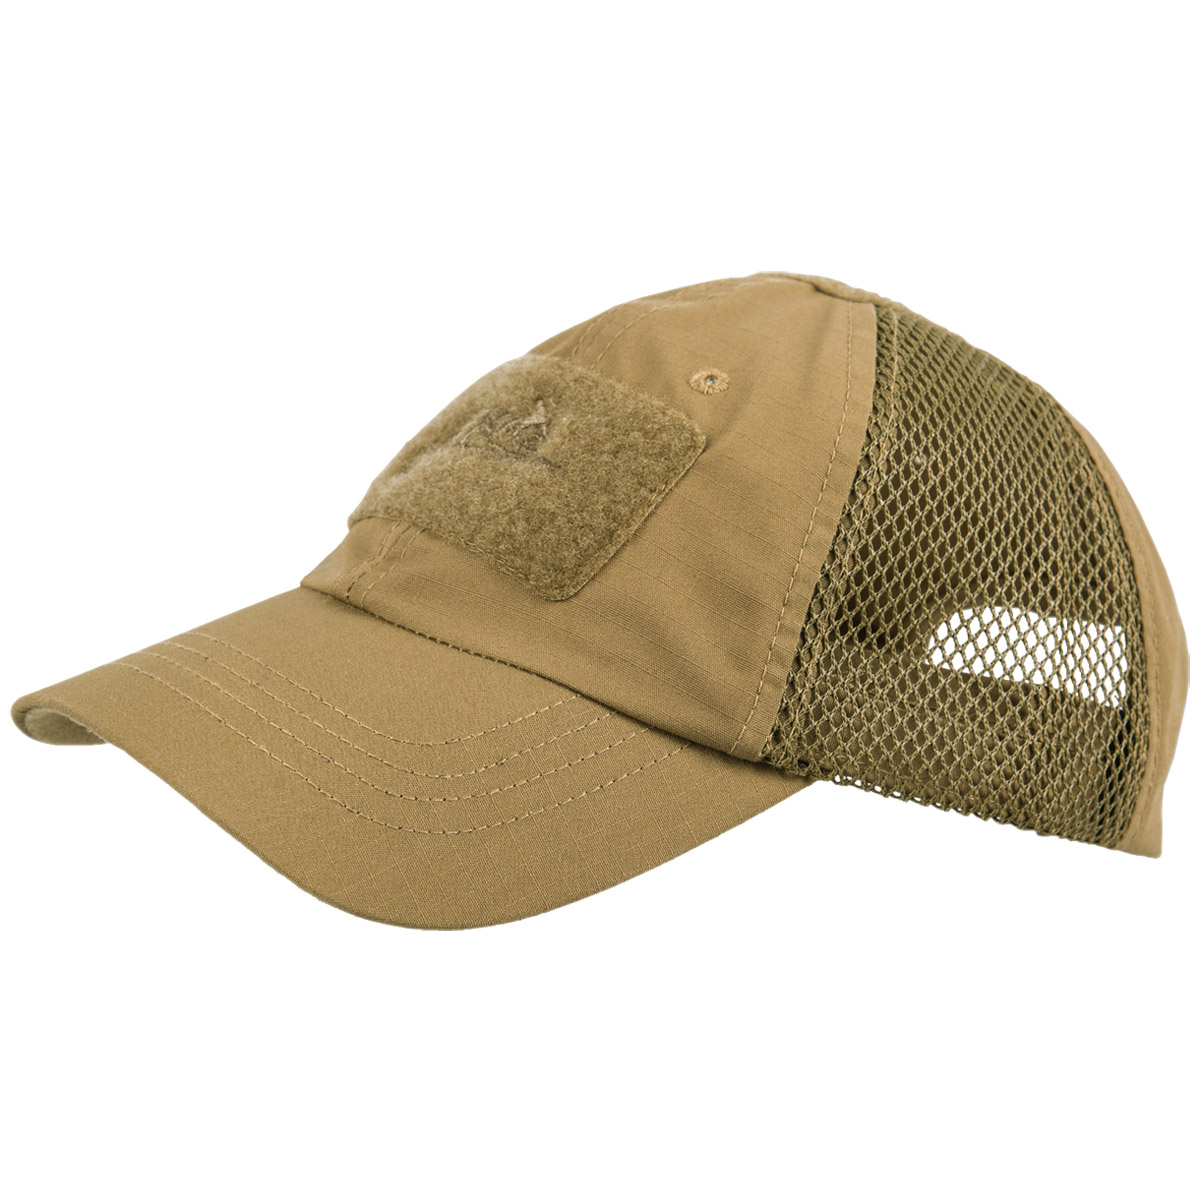 Sentinel Helikon Army Tactical Mens Baseball Cap Vent Military Airsoft  Ripstop Hat Coyote ec84d9798e3